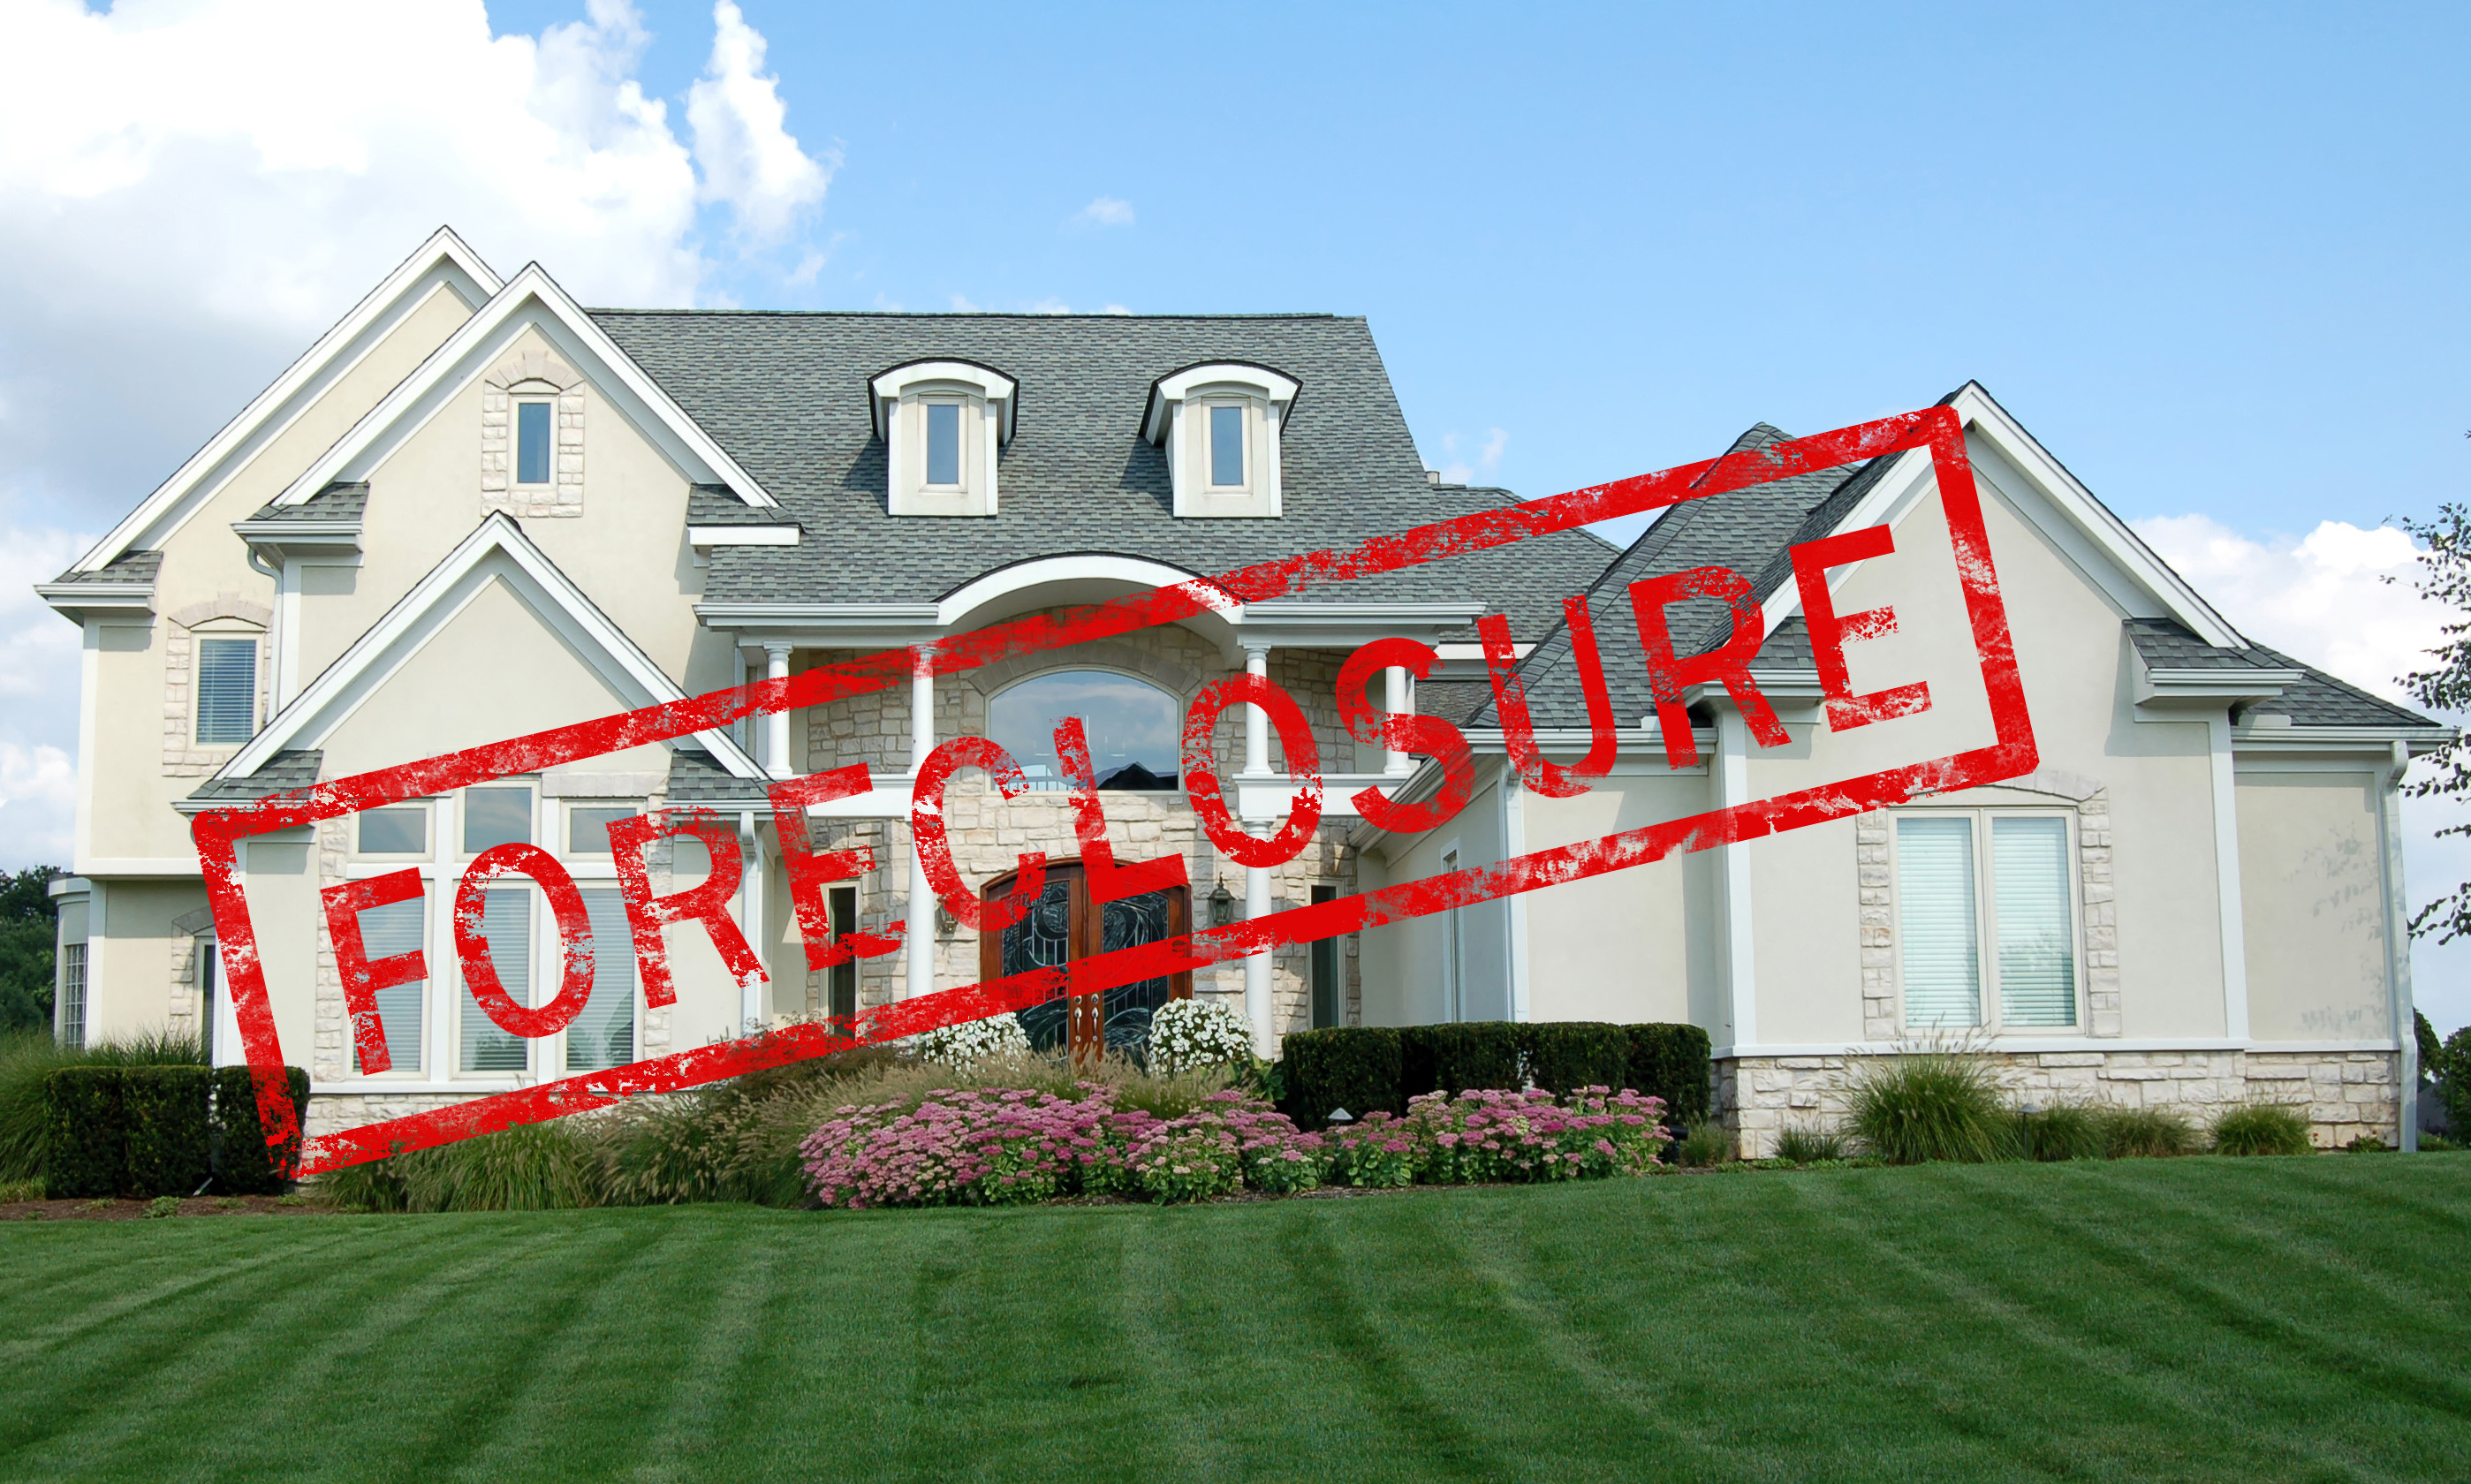 Call Benchmark Appraising, LLC to discuss appraisals pertaining to Forsyth foreclosures